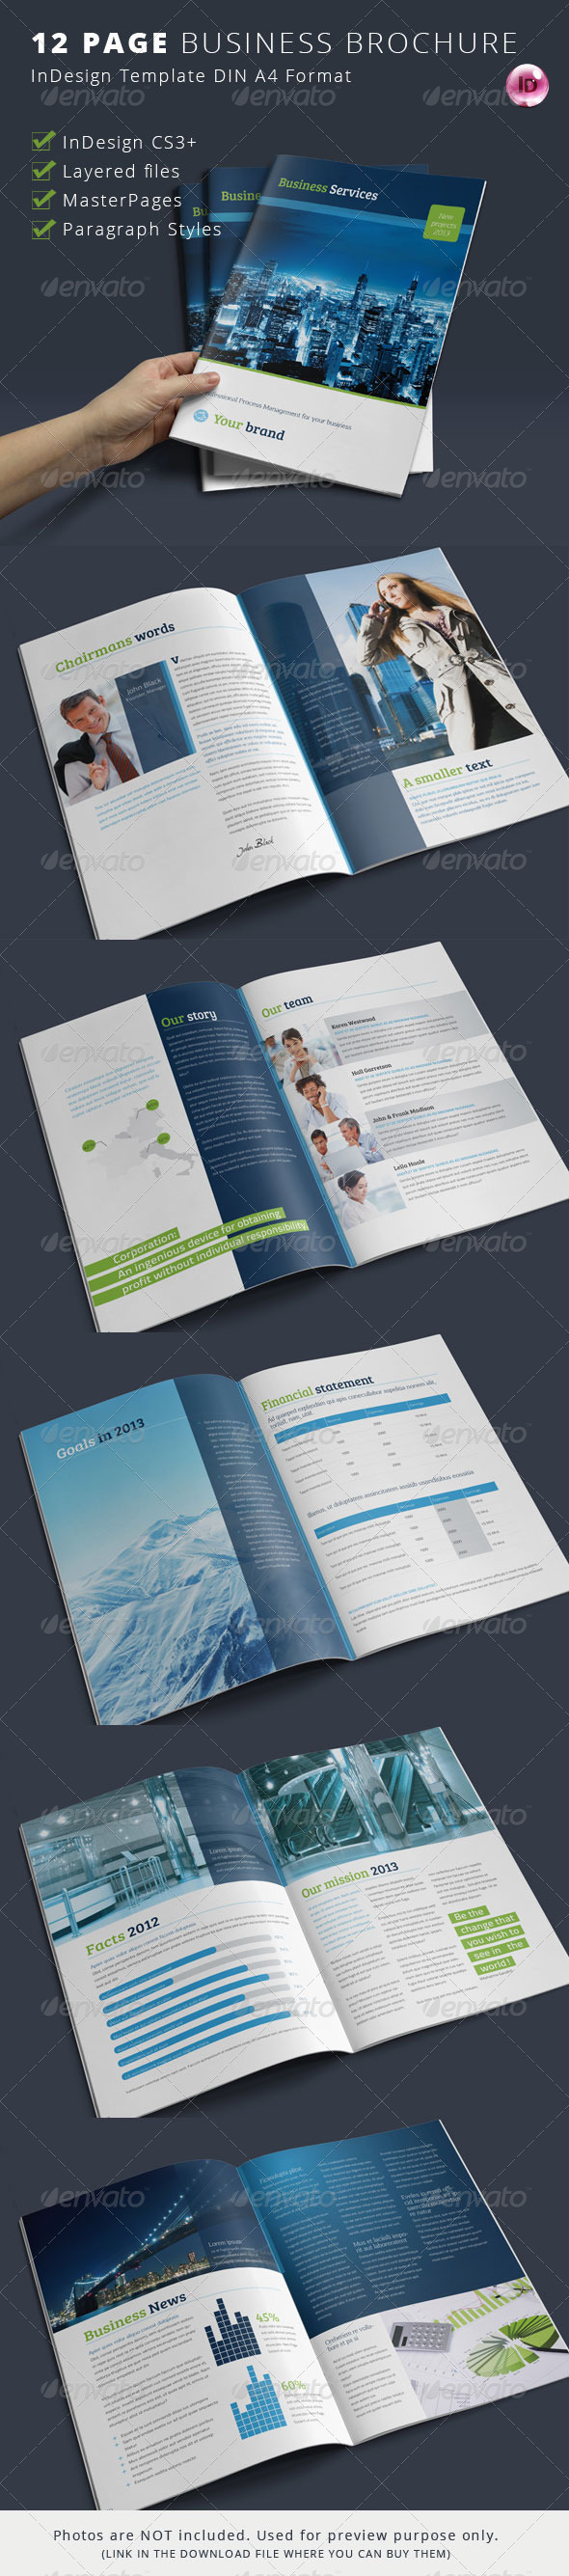 Template product page indesign for 12 page brochure template